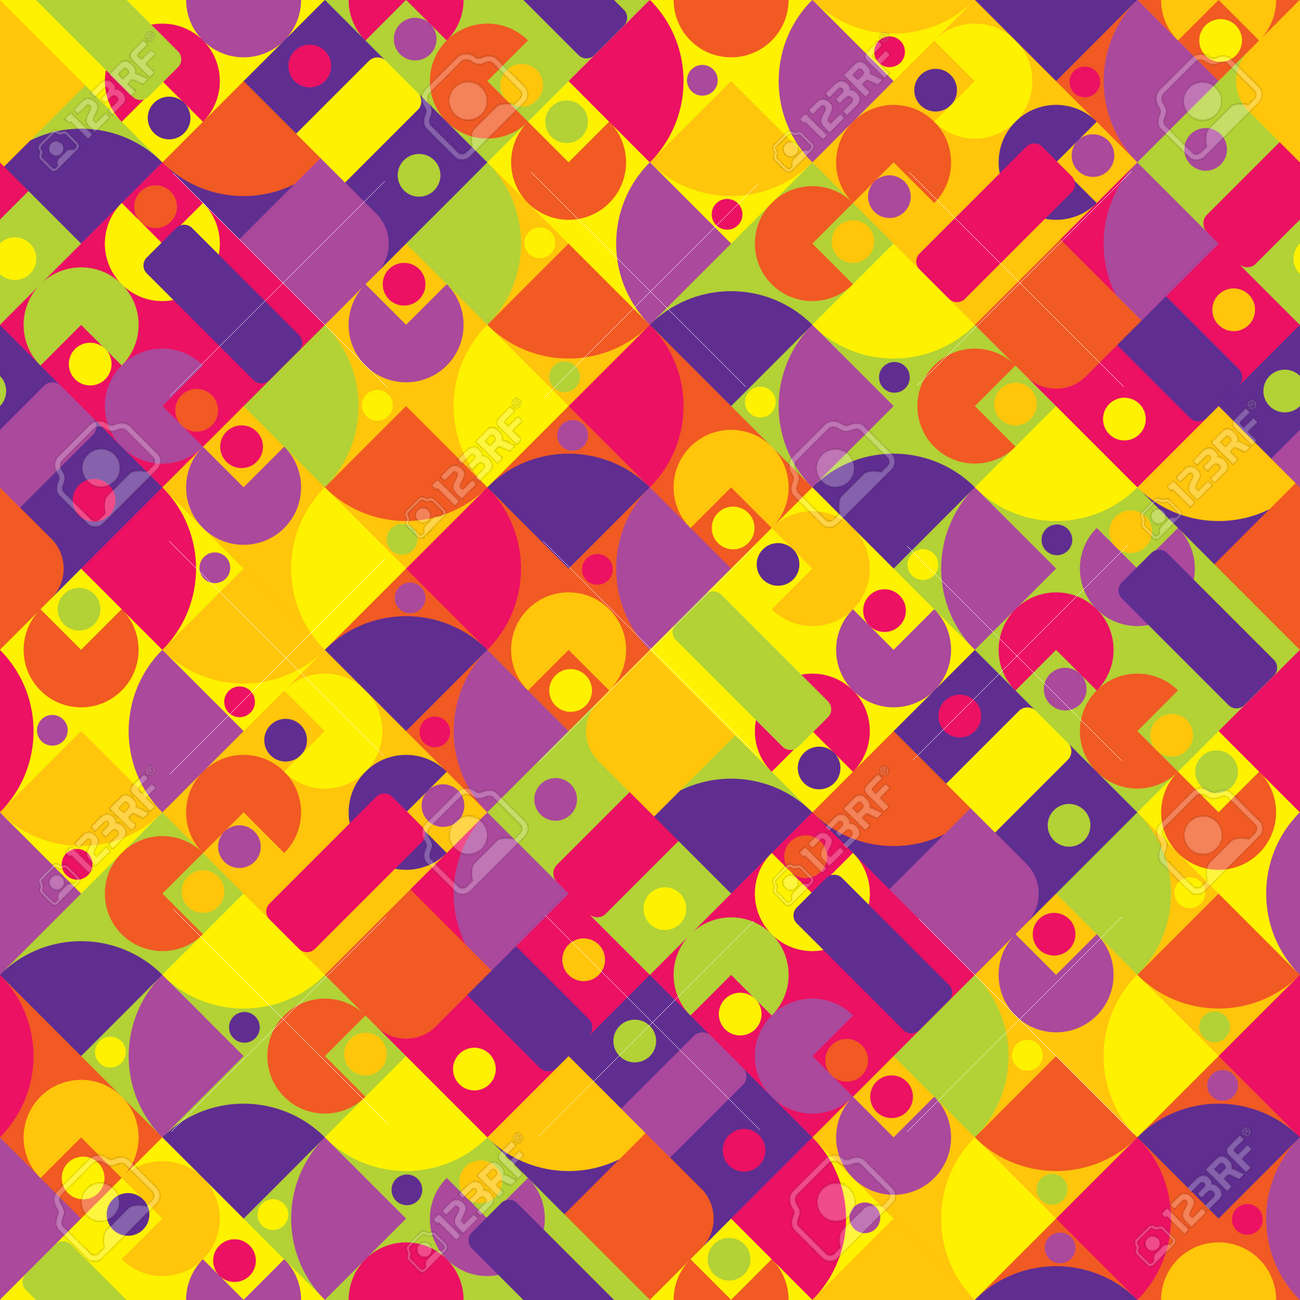 Abstract seamless repeating geometric pattern - 169048974